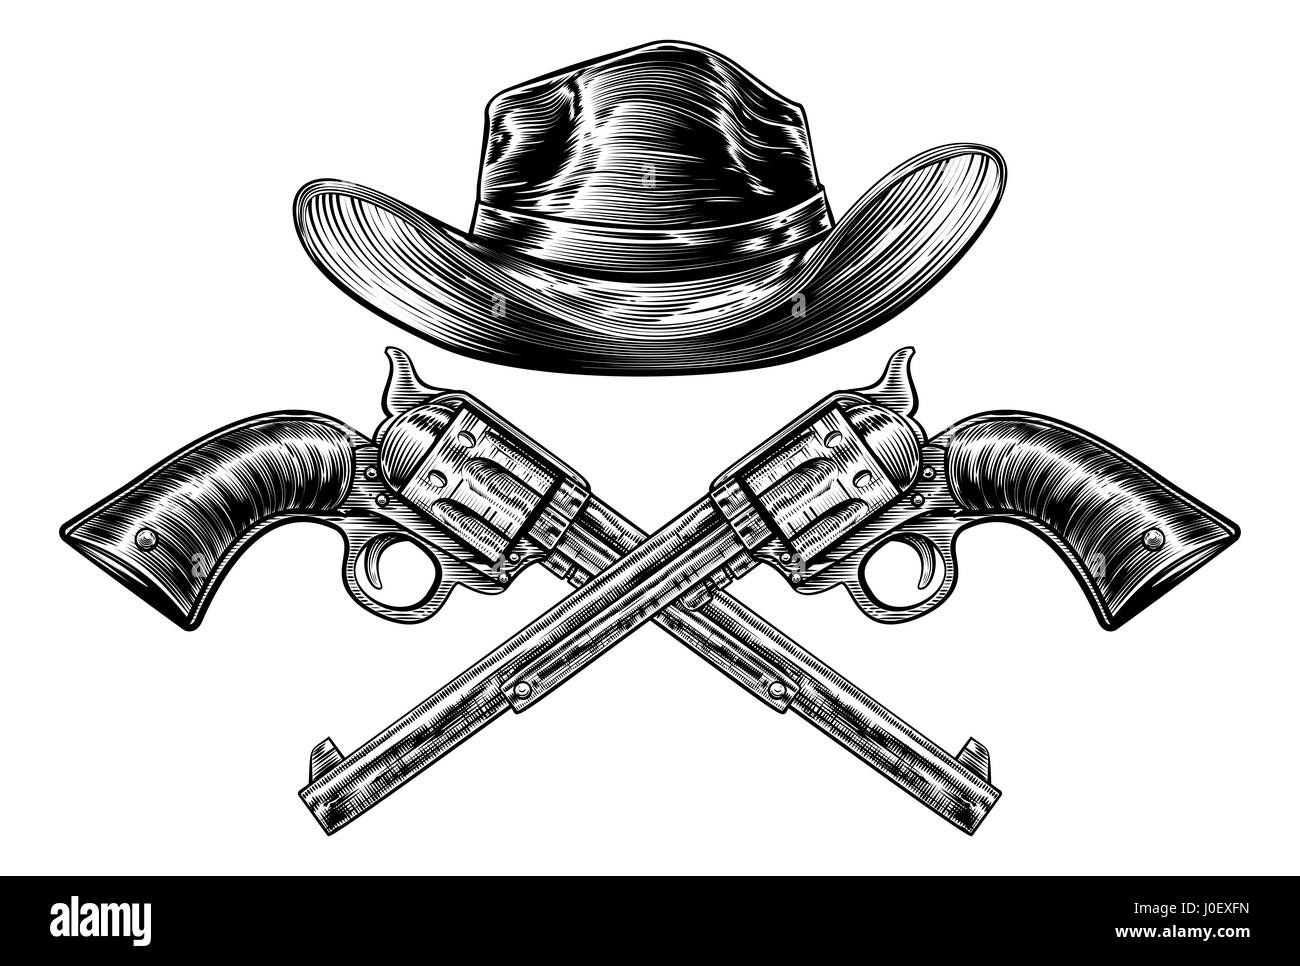 a21a7f43abc A cowboy western hat and pair of crossed pistol guns in a vintage etched  engraved style